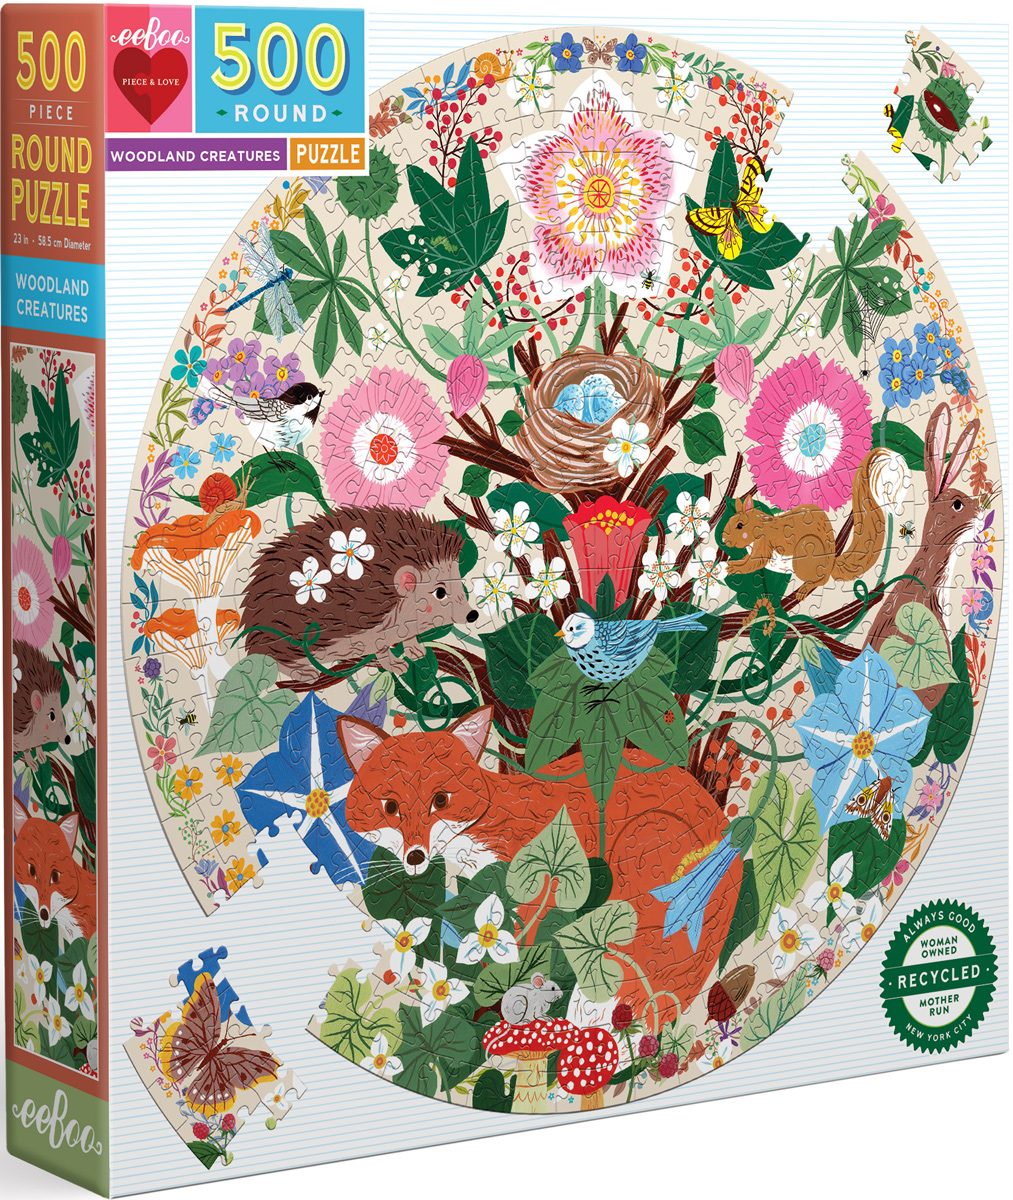 Woodland Creatures Forest Jigsaw Puzzle